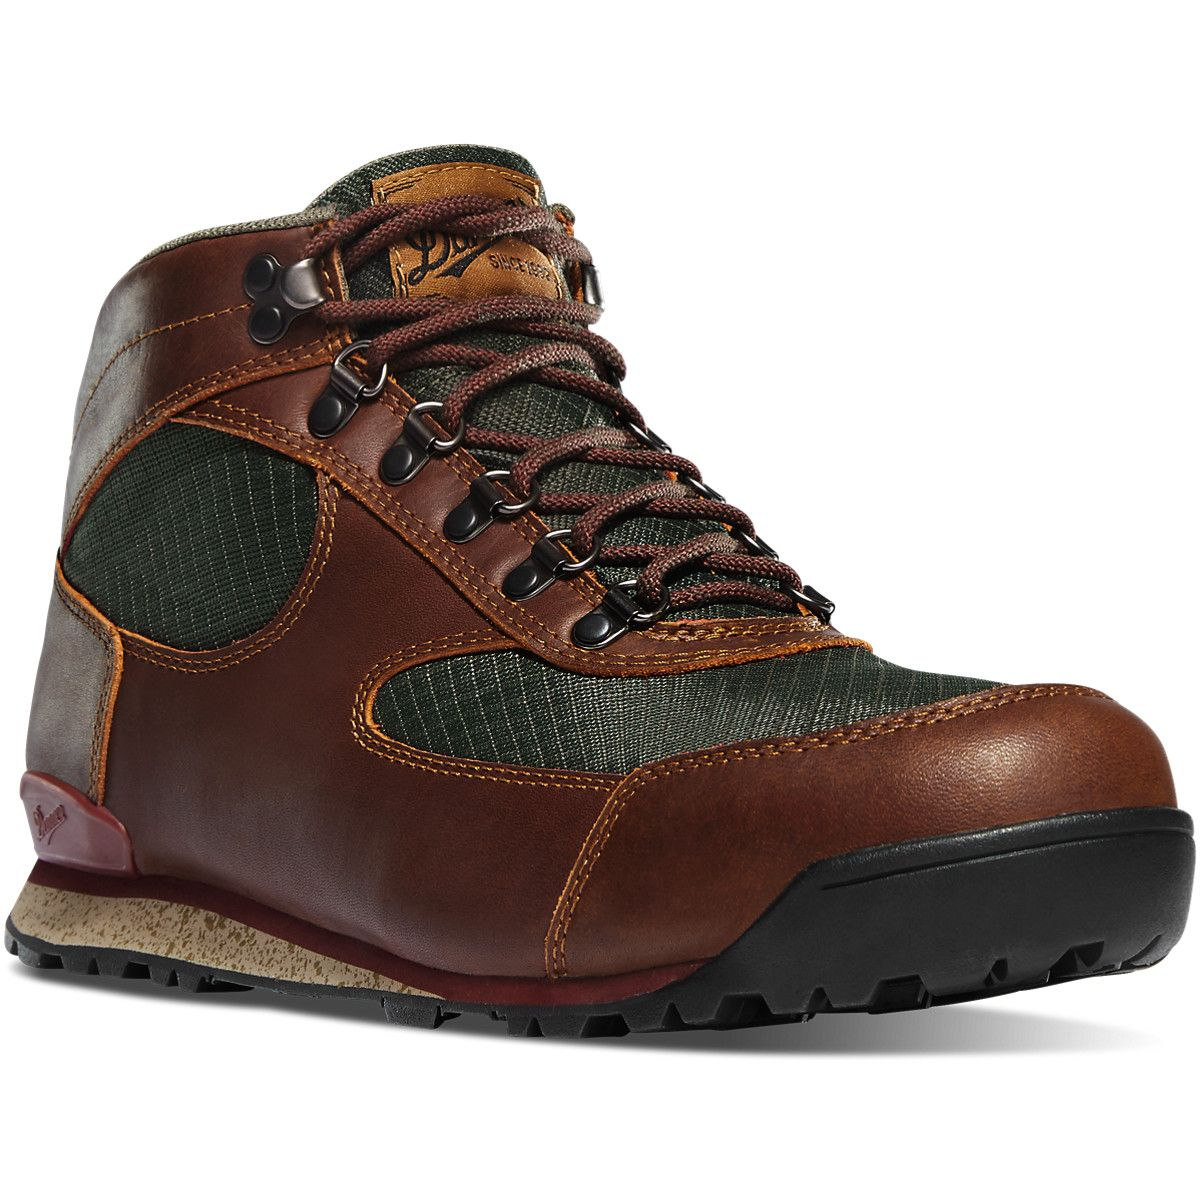 Danner Jag Barley Shoes Hiking Boots Hiking Shoes